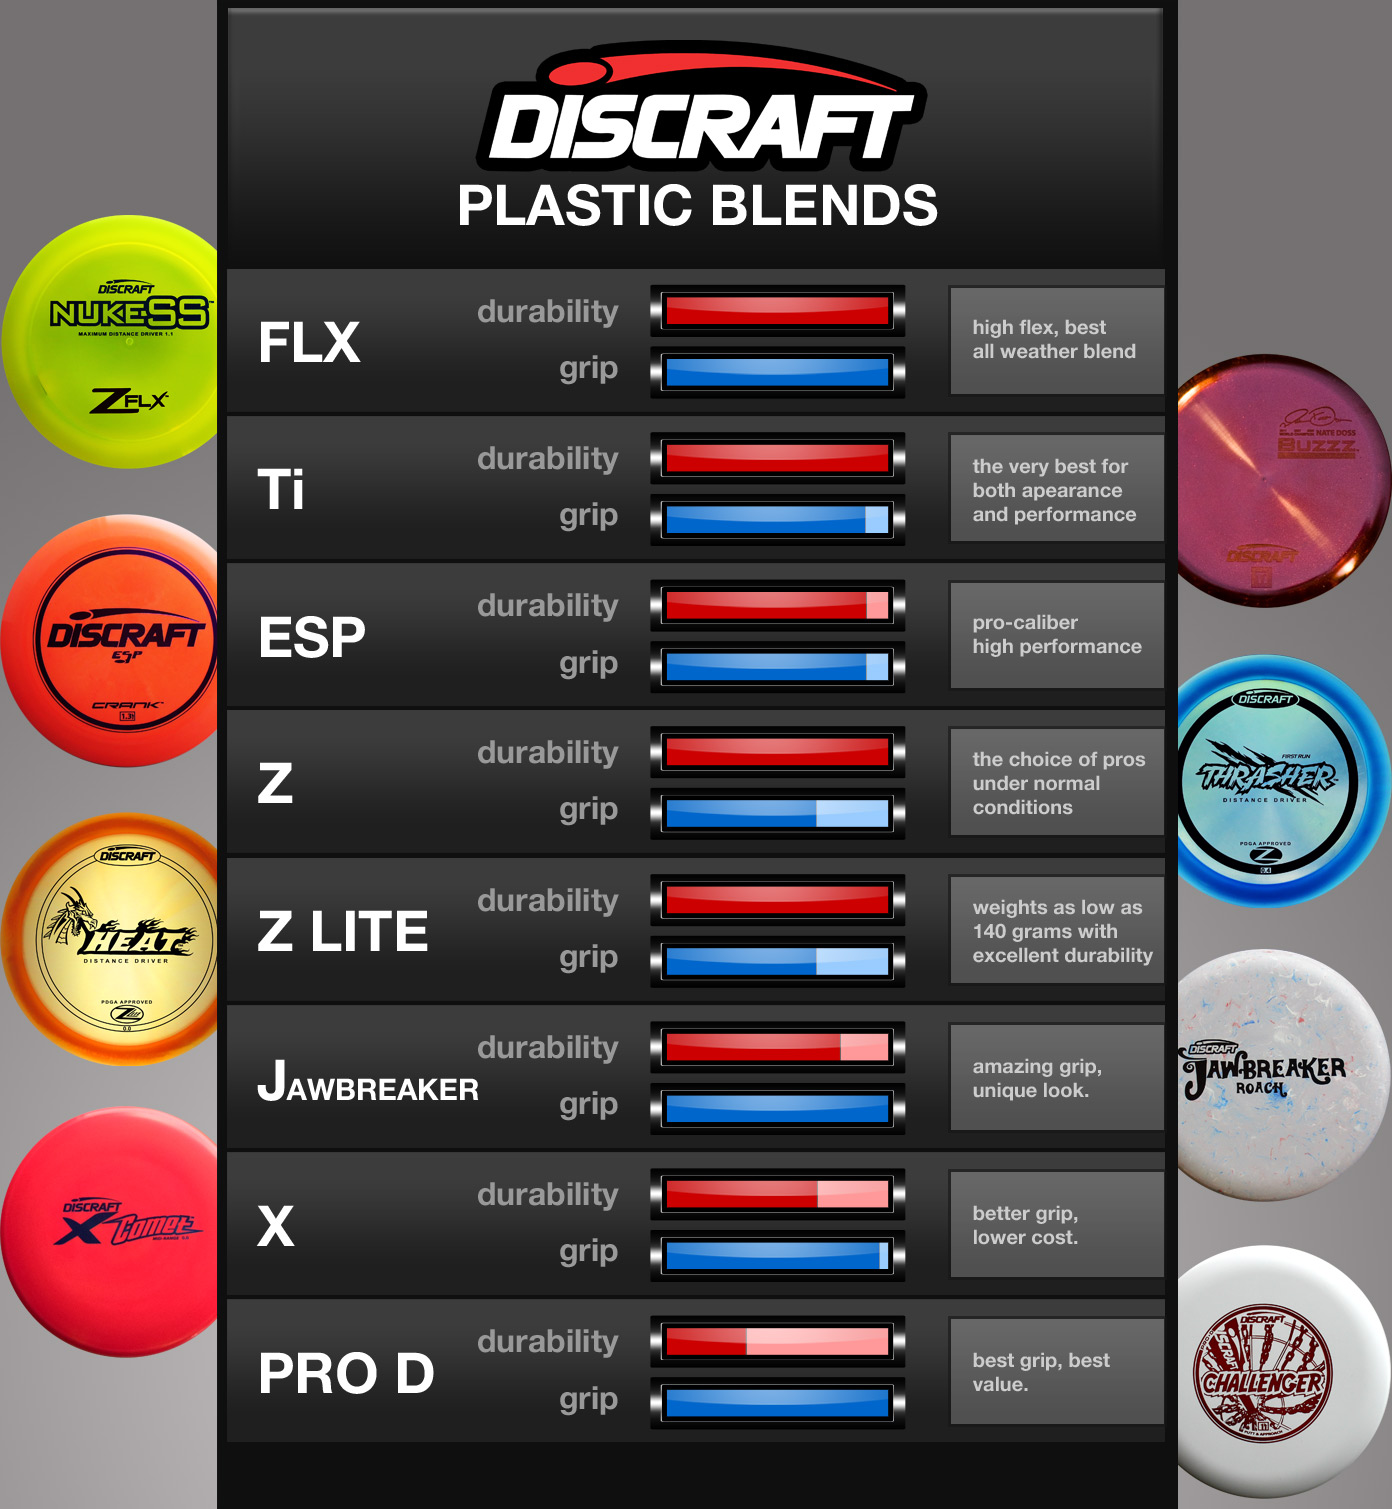 discraft-plastic-blends.jpg